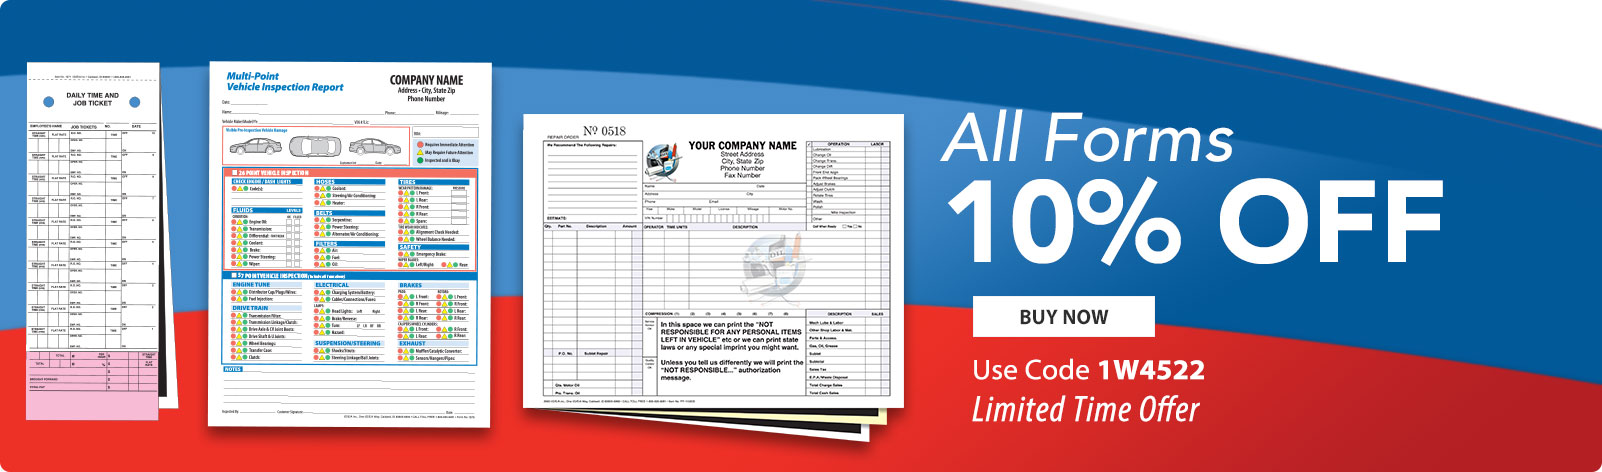 10% Off All Automotive Repair Forms!